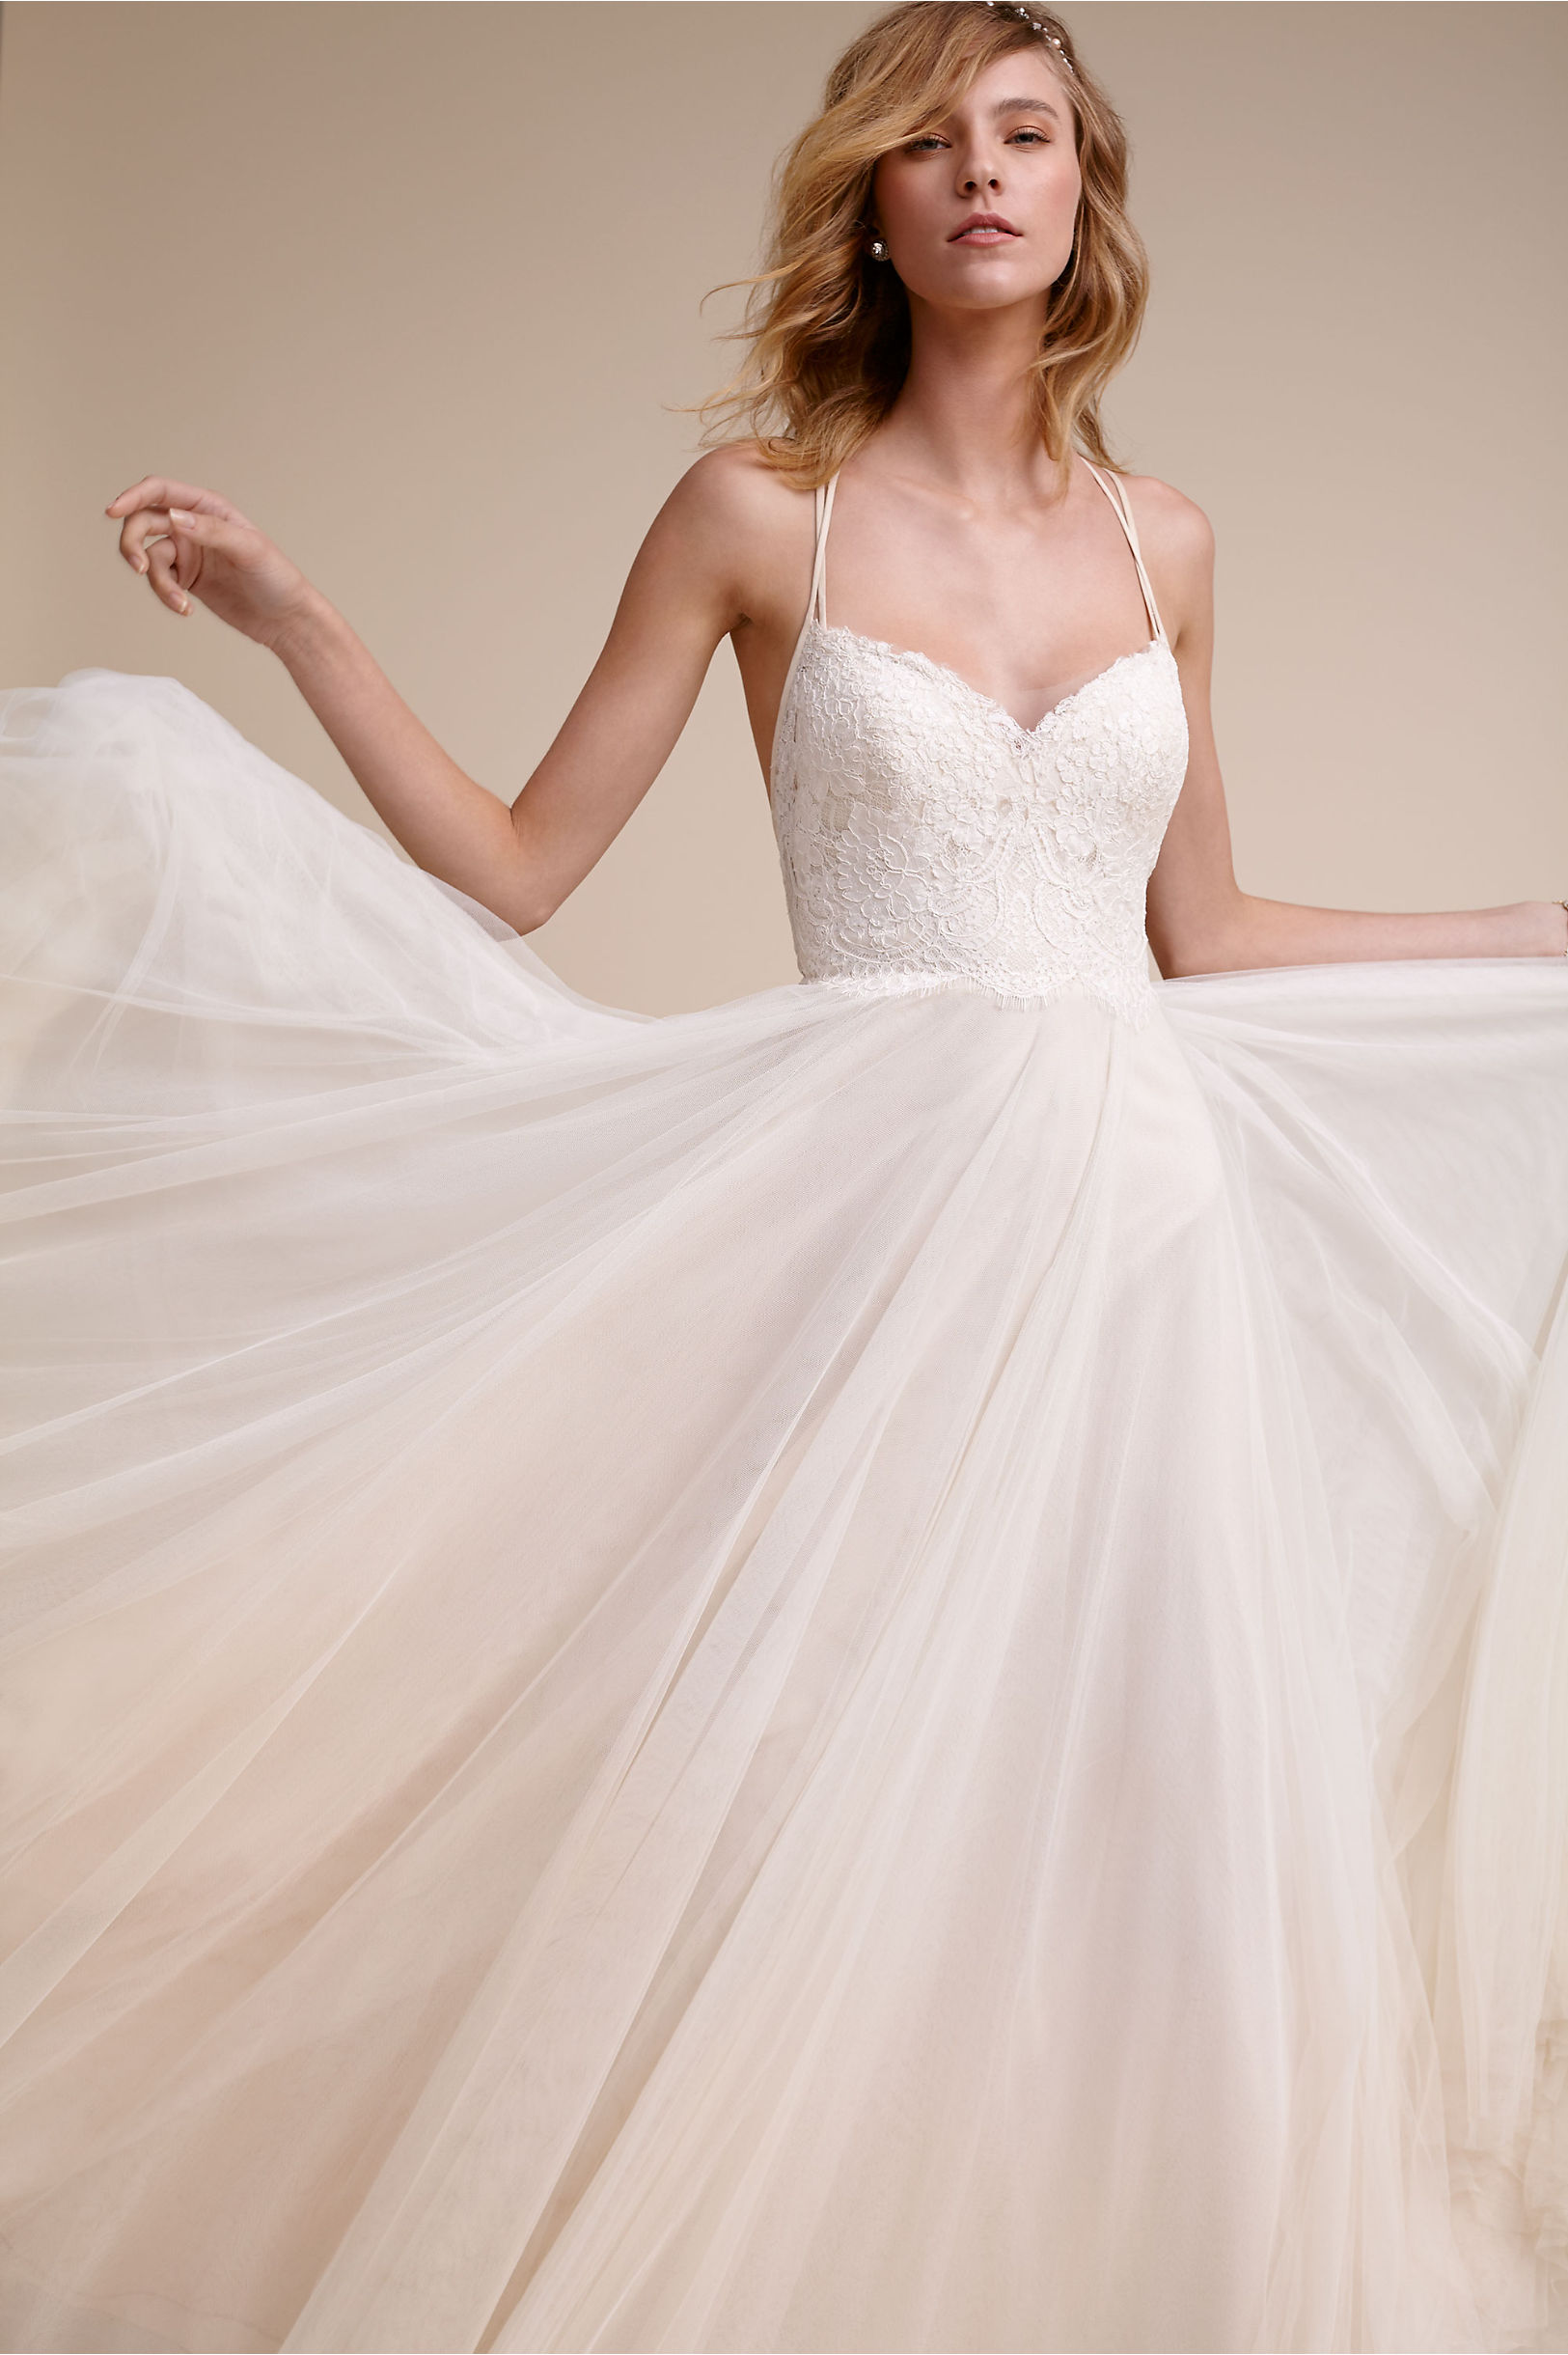 Rosalind Gown - Sorry not sorry, this beaut is also from BHLDN. Dainty straps create a beautiful back detail and a full tulle skirt give this gown so much movement and charm.Price: $1150